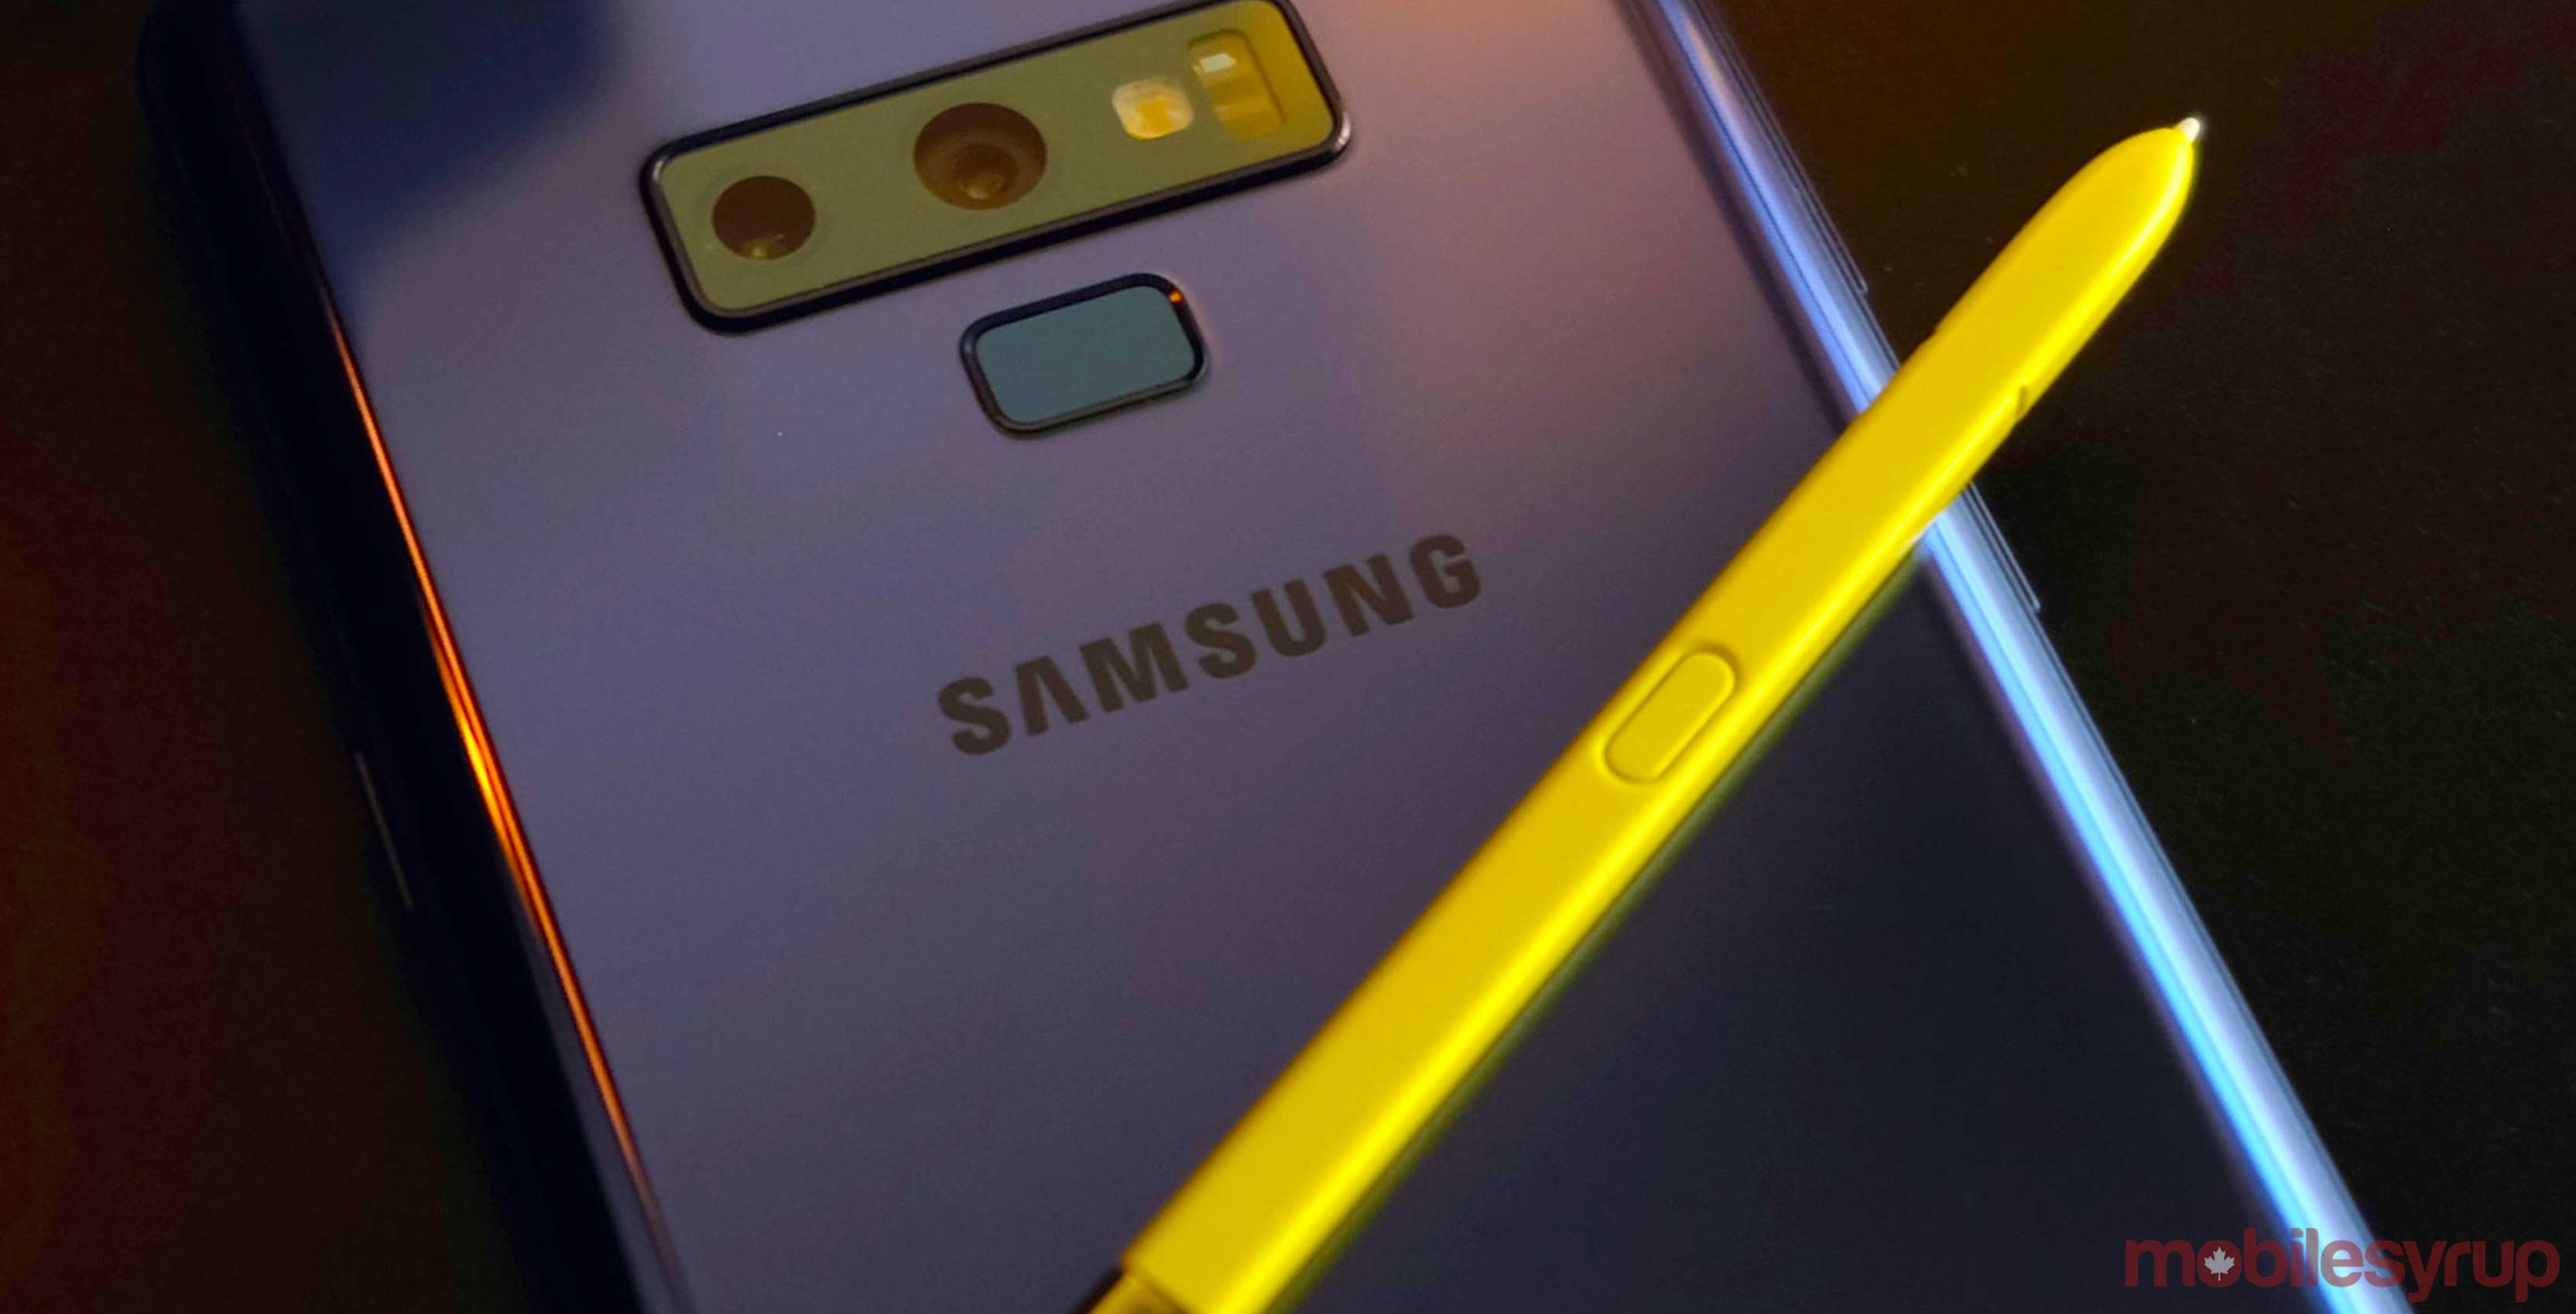 Rogers update schedule says Note 9, S9 and S9+ to get Pie in February